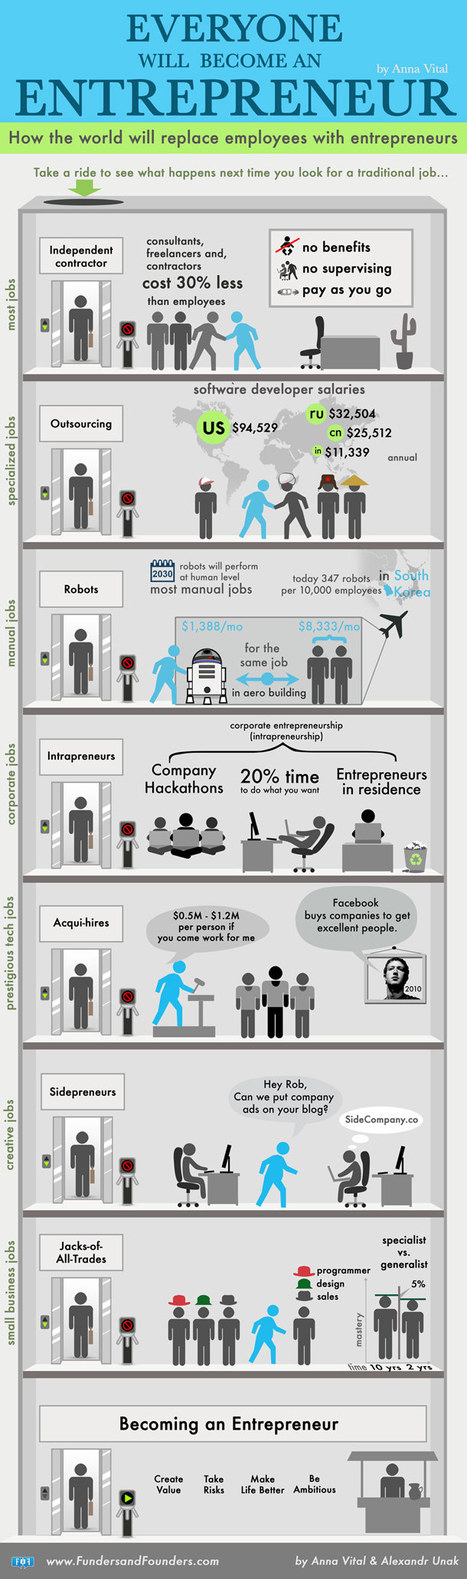 Why Everyone Will Have to Become an Entrepreneur (Infographic) | Think and at like an Entrepreneur | Scoop.it